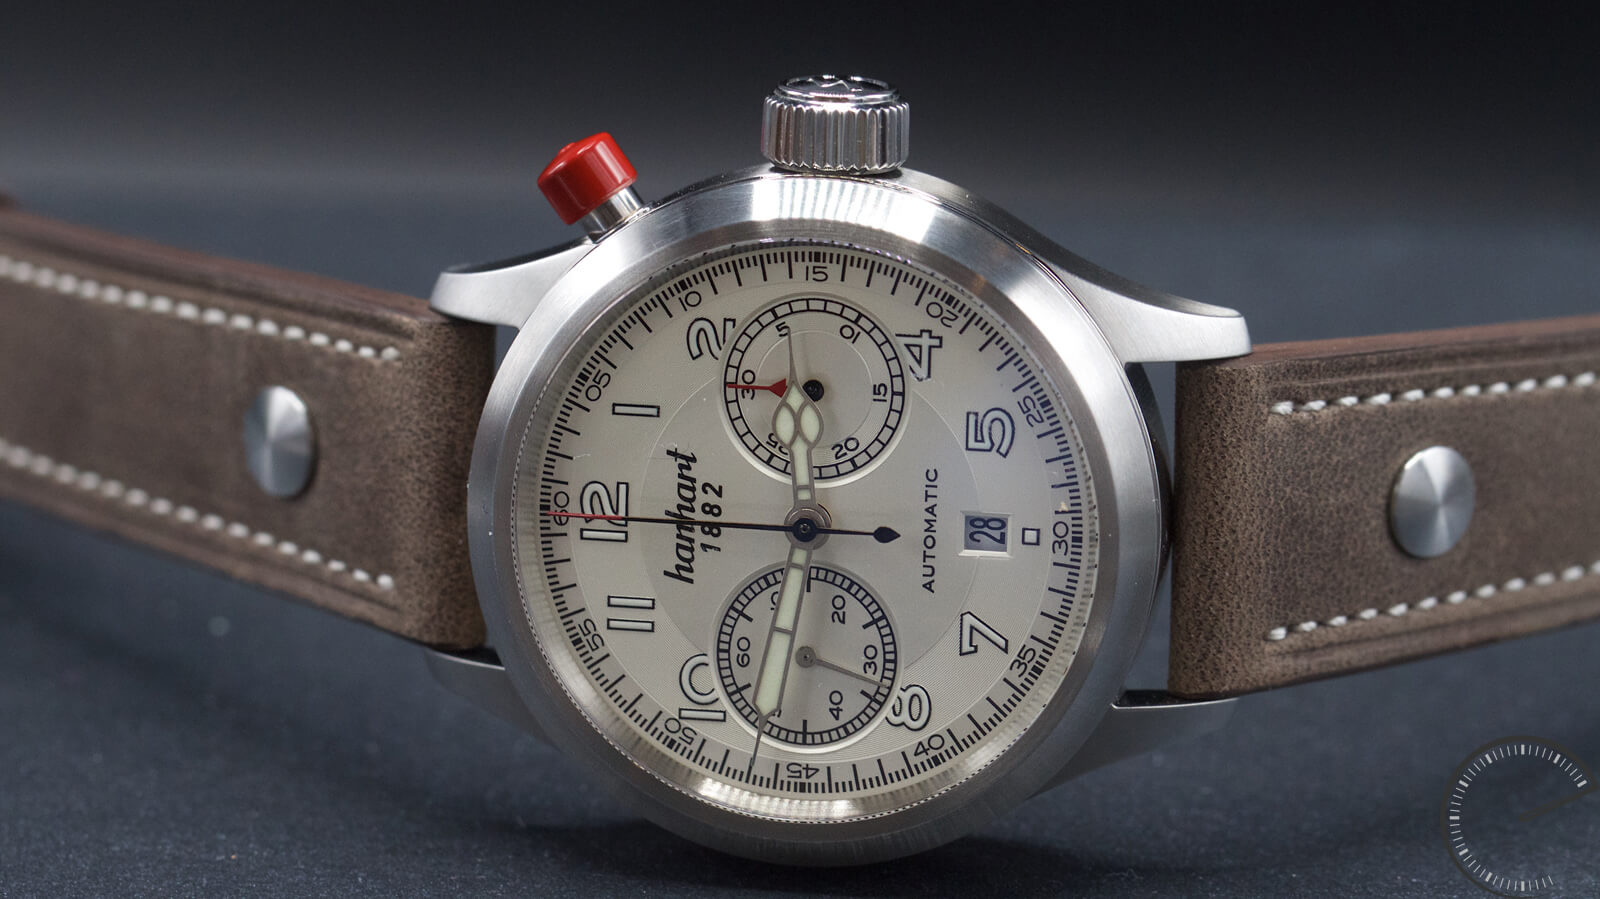 Hanhart Pioneer MonoControl silver dial - bicompax chronograph with monopusher